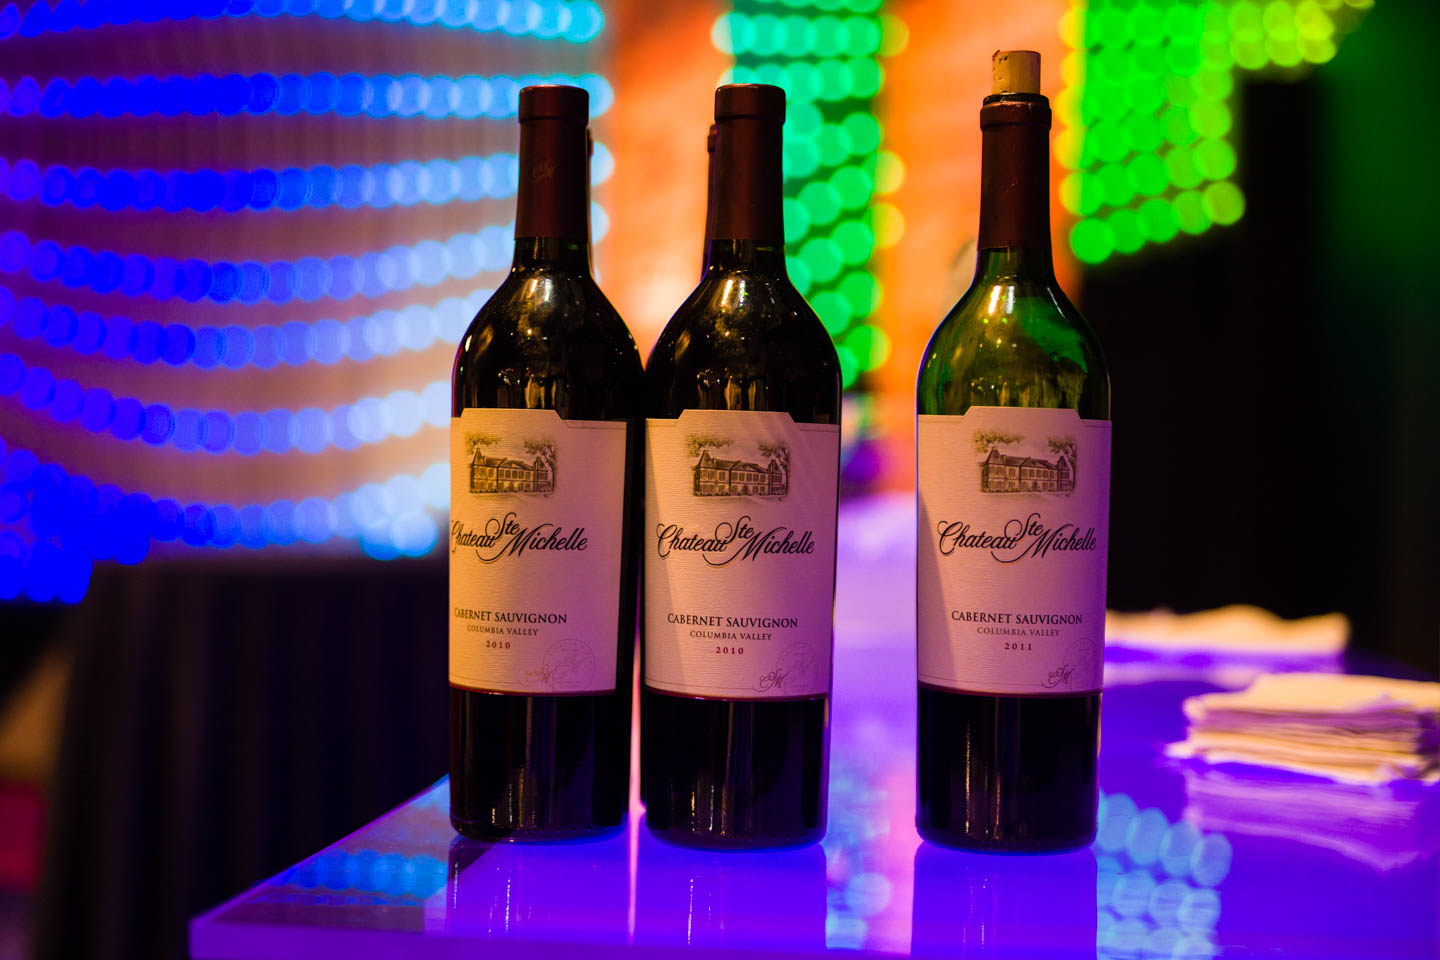 Wines for the evening with neon lights in the background